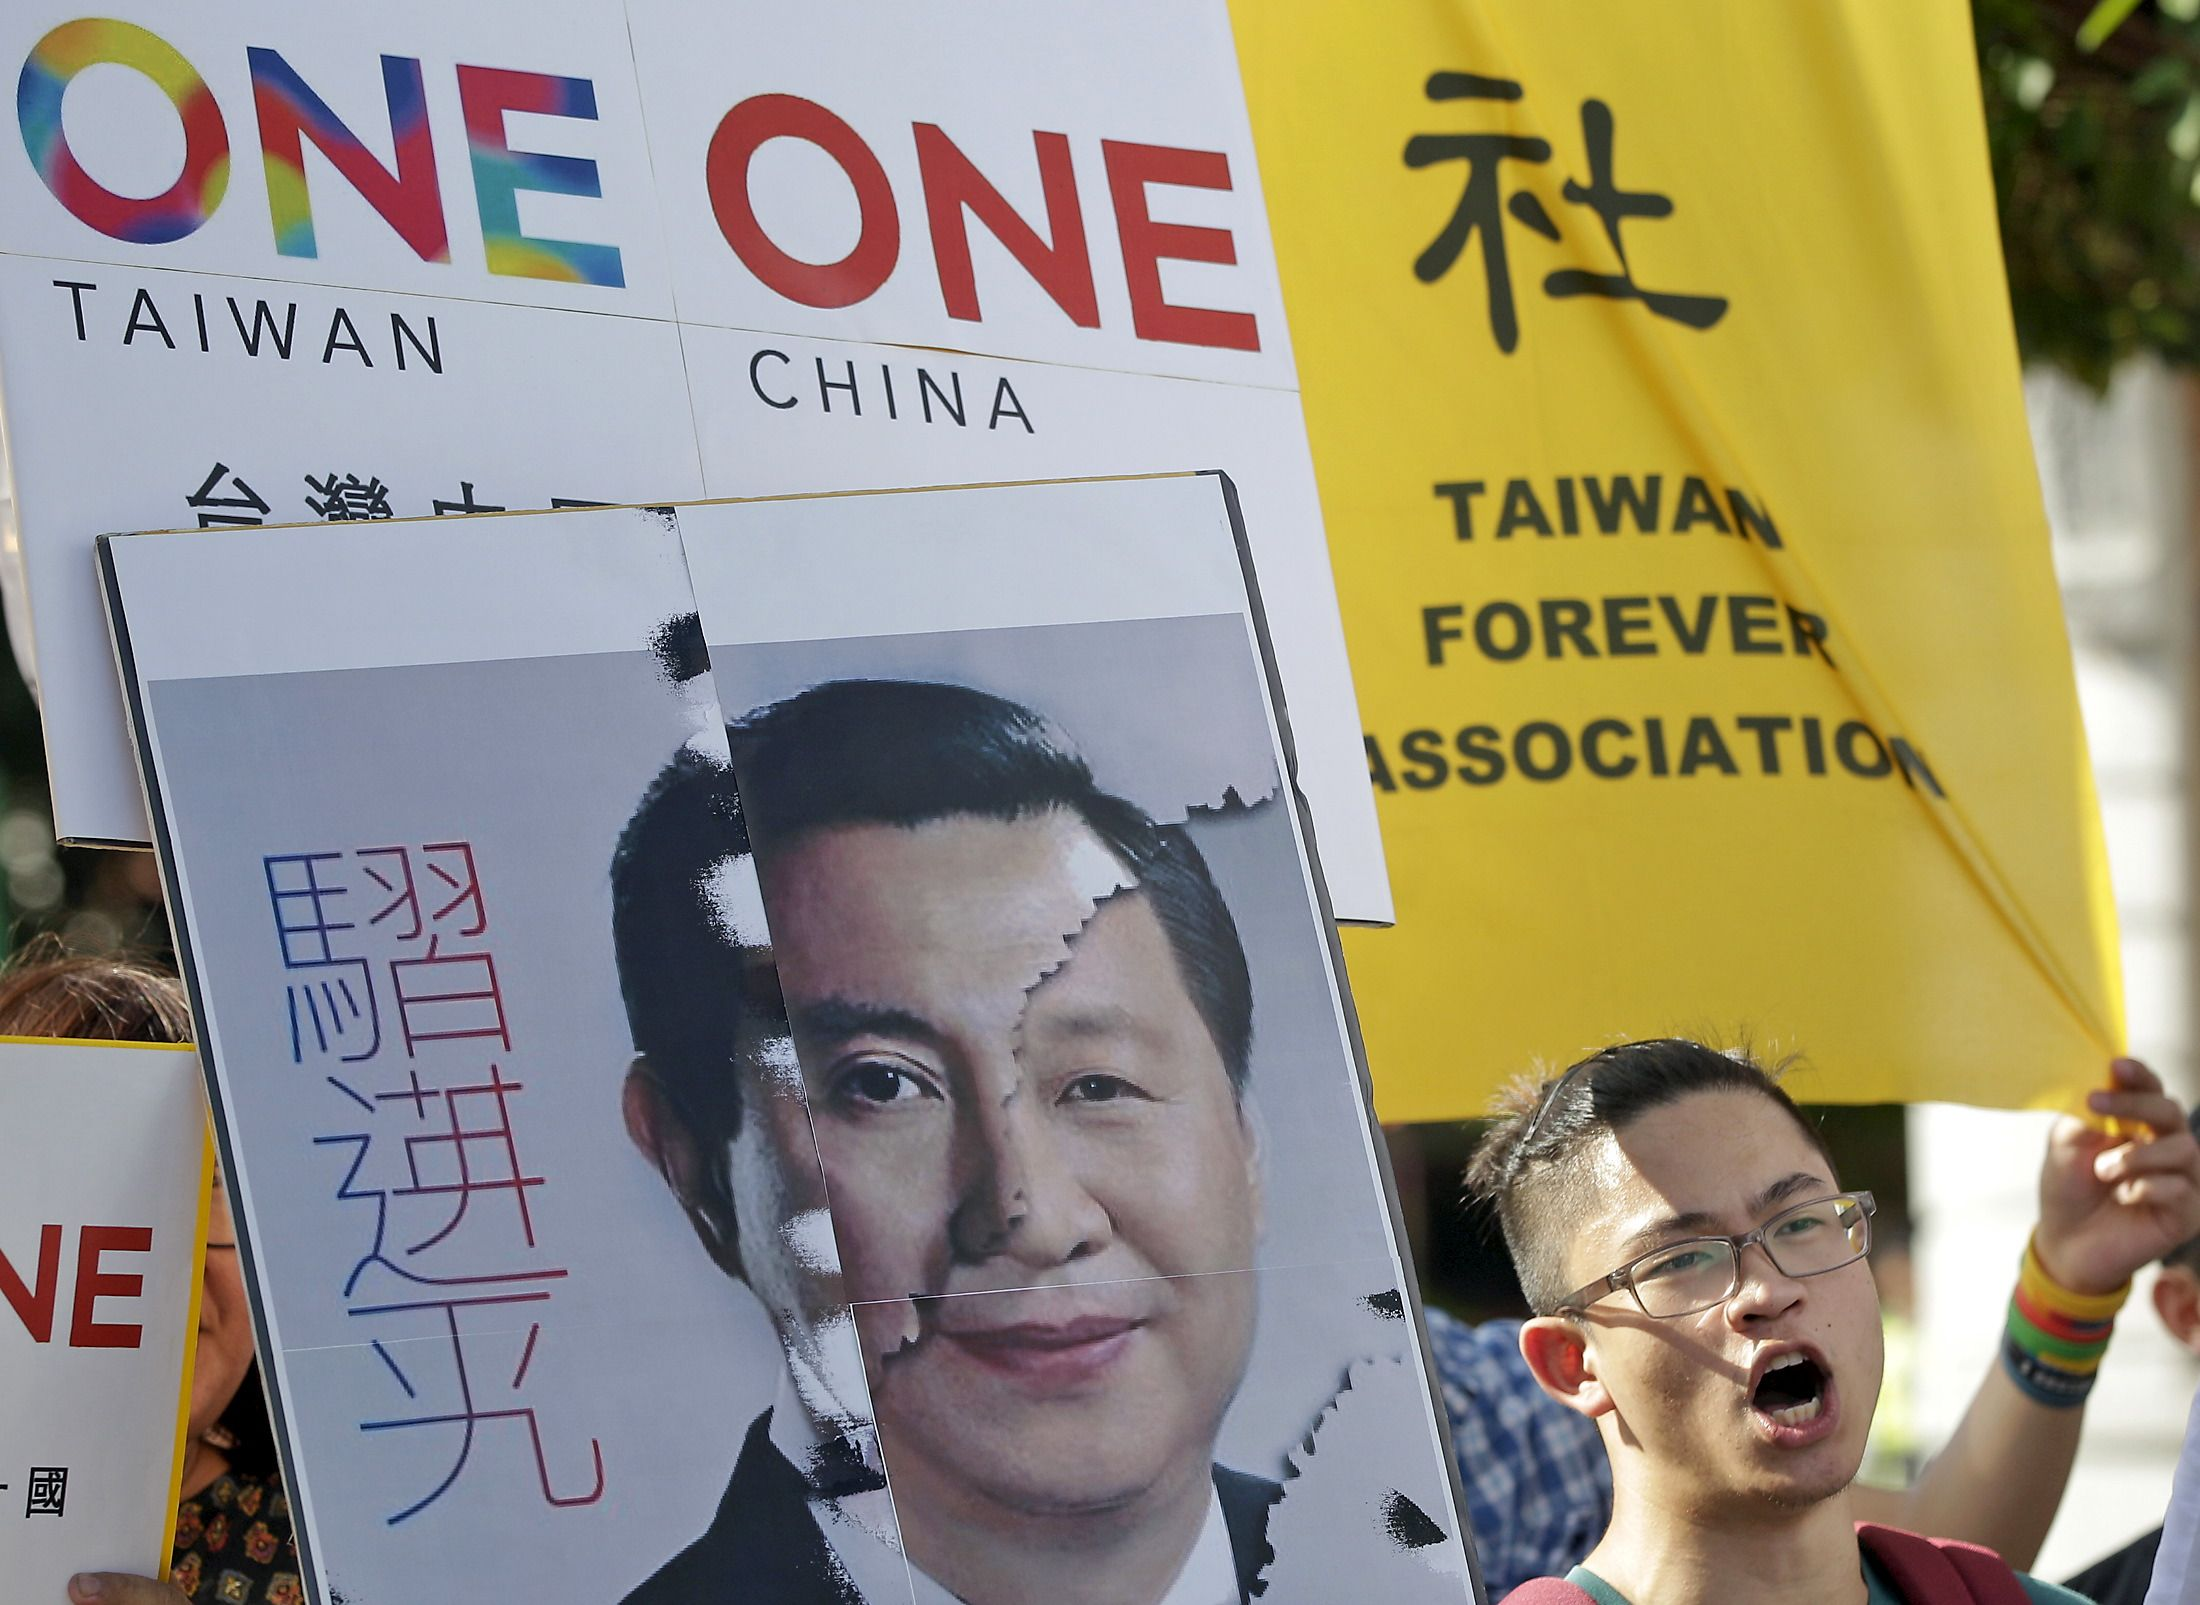 Newsweek: 為什麼兩岸元首現在做了自1949年來首度會面? Why the Leaders of China and Taiwan Are Meeting for the First Time Since 1949